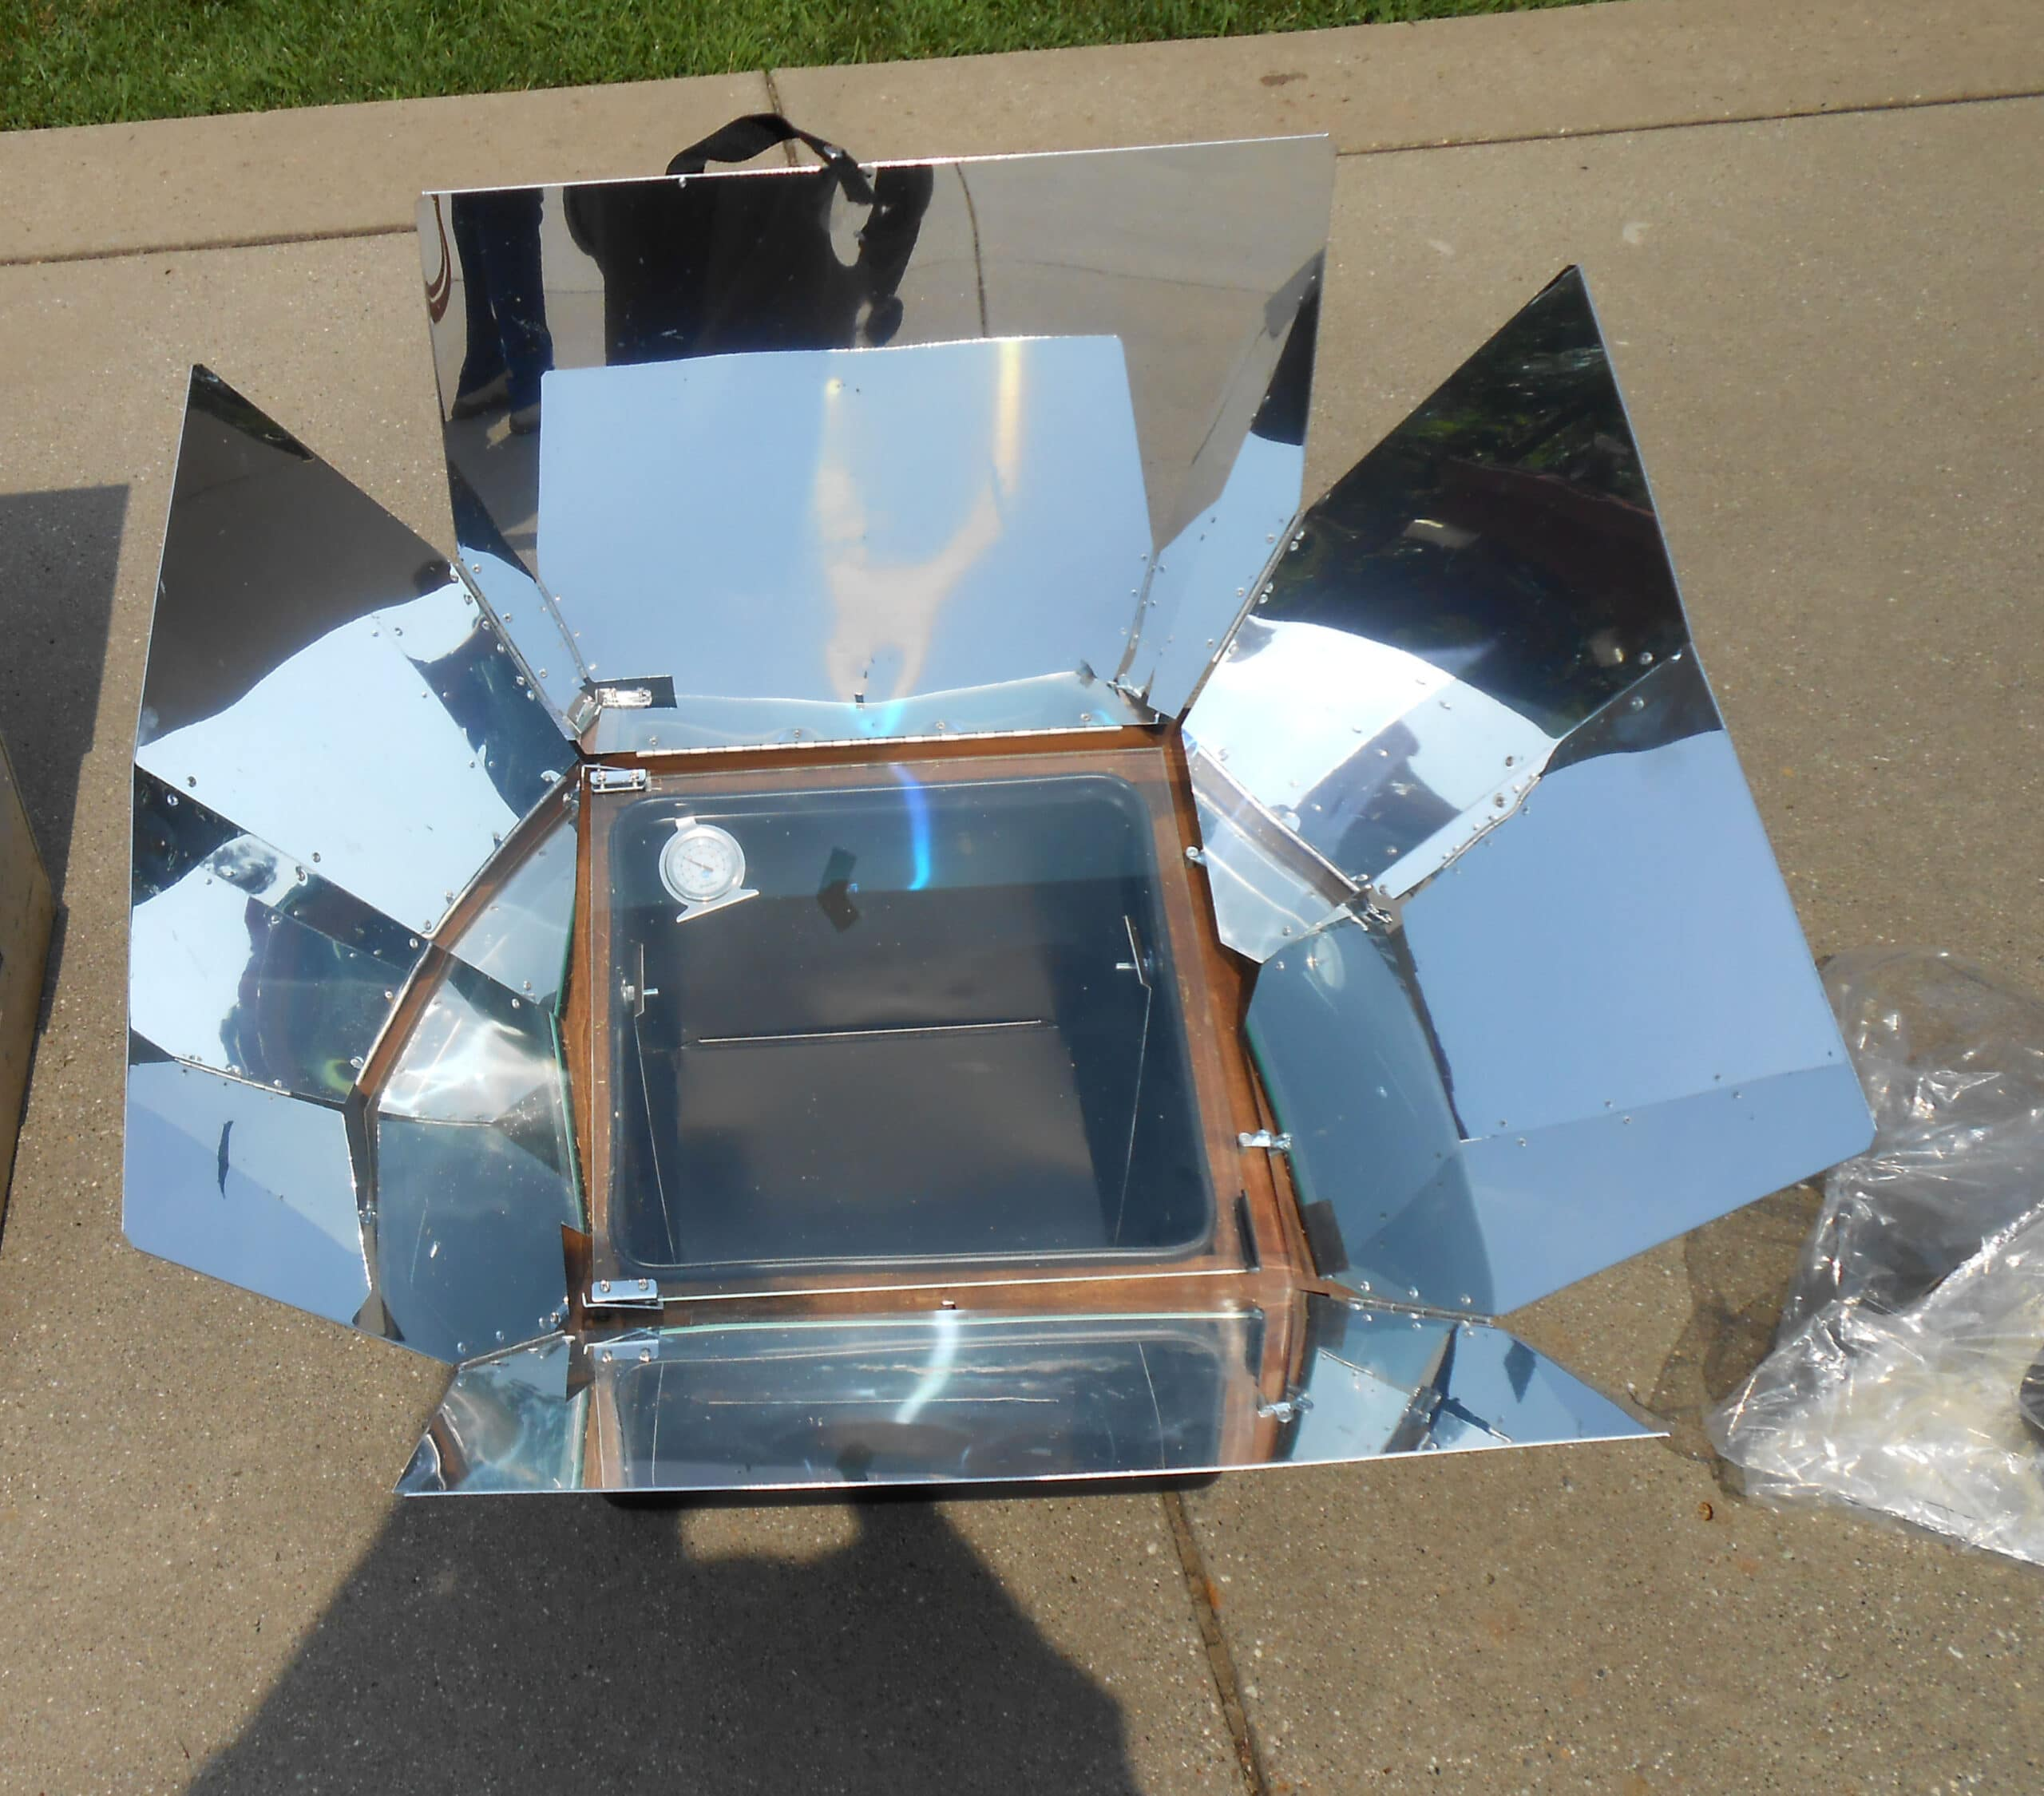 solar oven Learn how to solar cook with the premiere solar cooking oven - the global sun  oven.